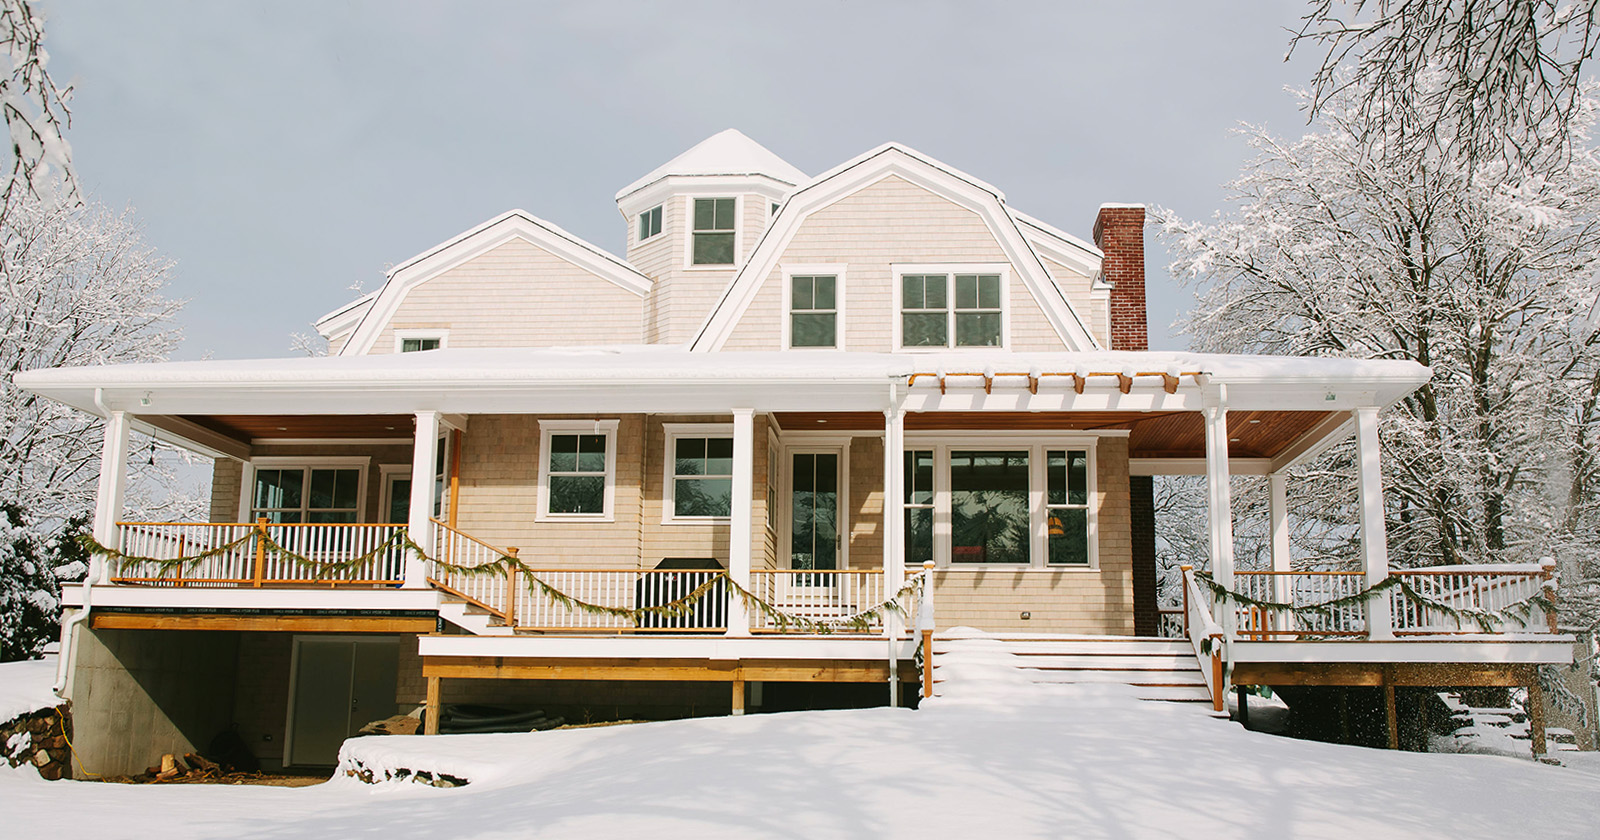 Large Home with Beige Vinyl Siding Surrounded by Snow